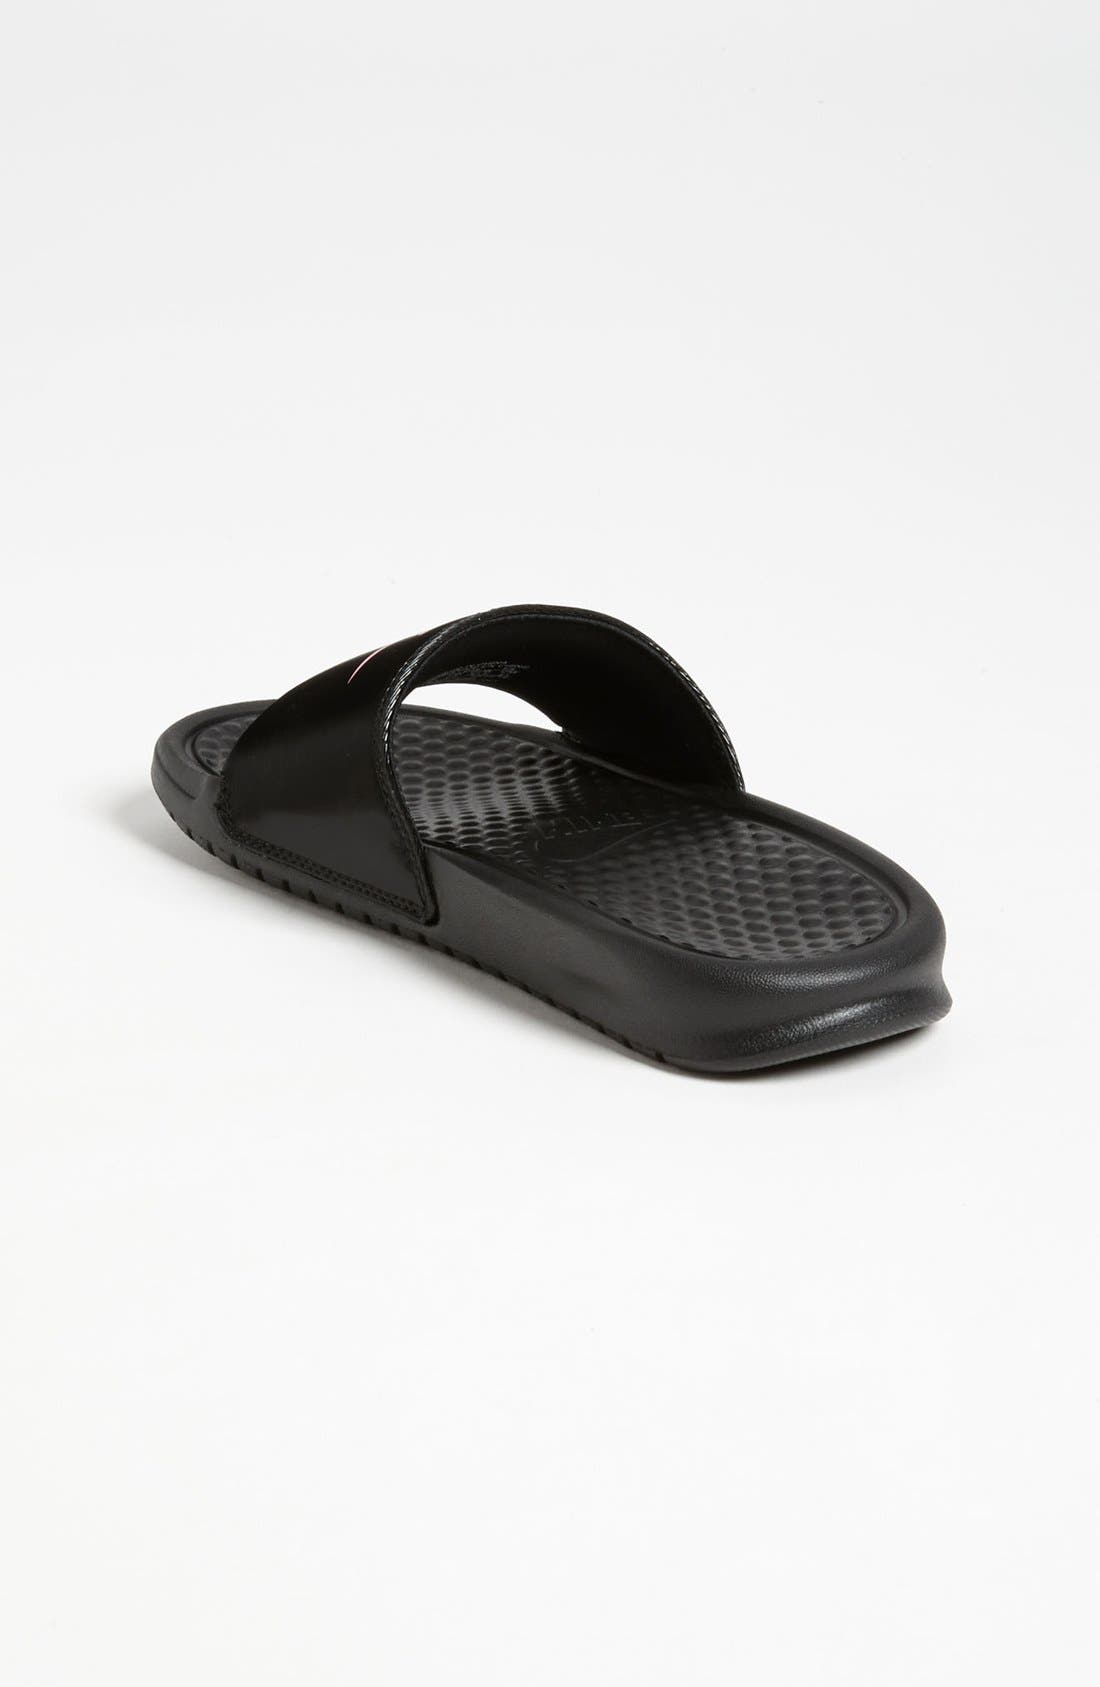 Alternate Image 2  - Nike 'Benassi' Slide Sandal (Toddler, Little Kid & Big Kid)